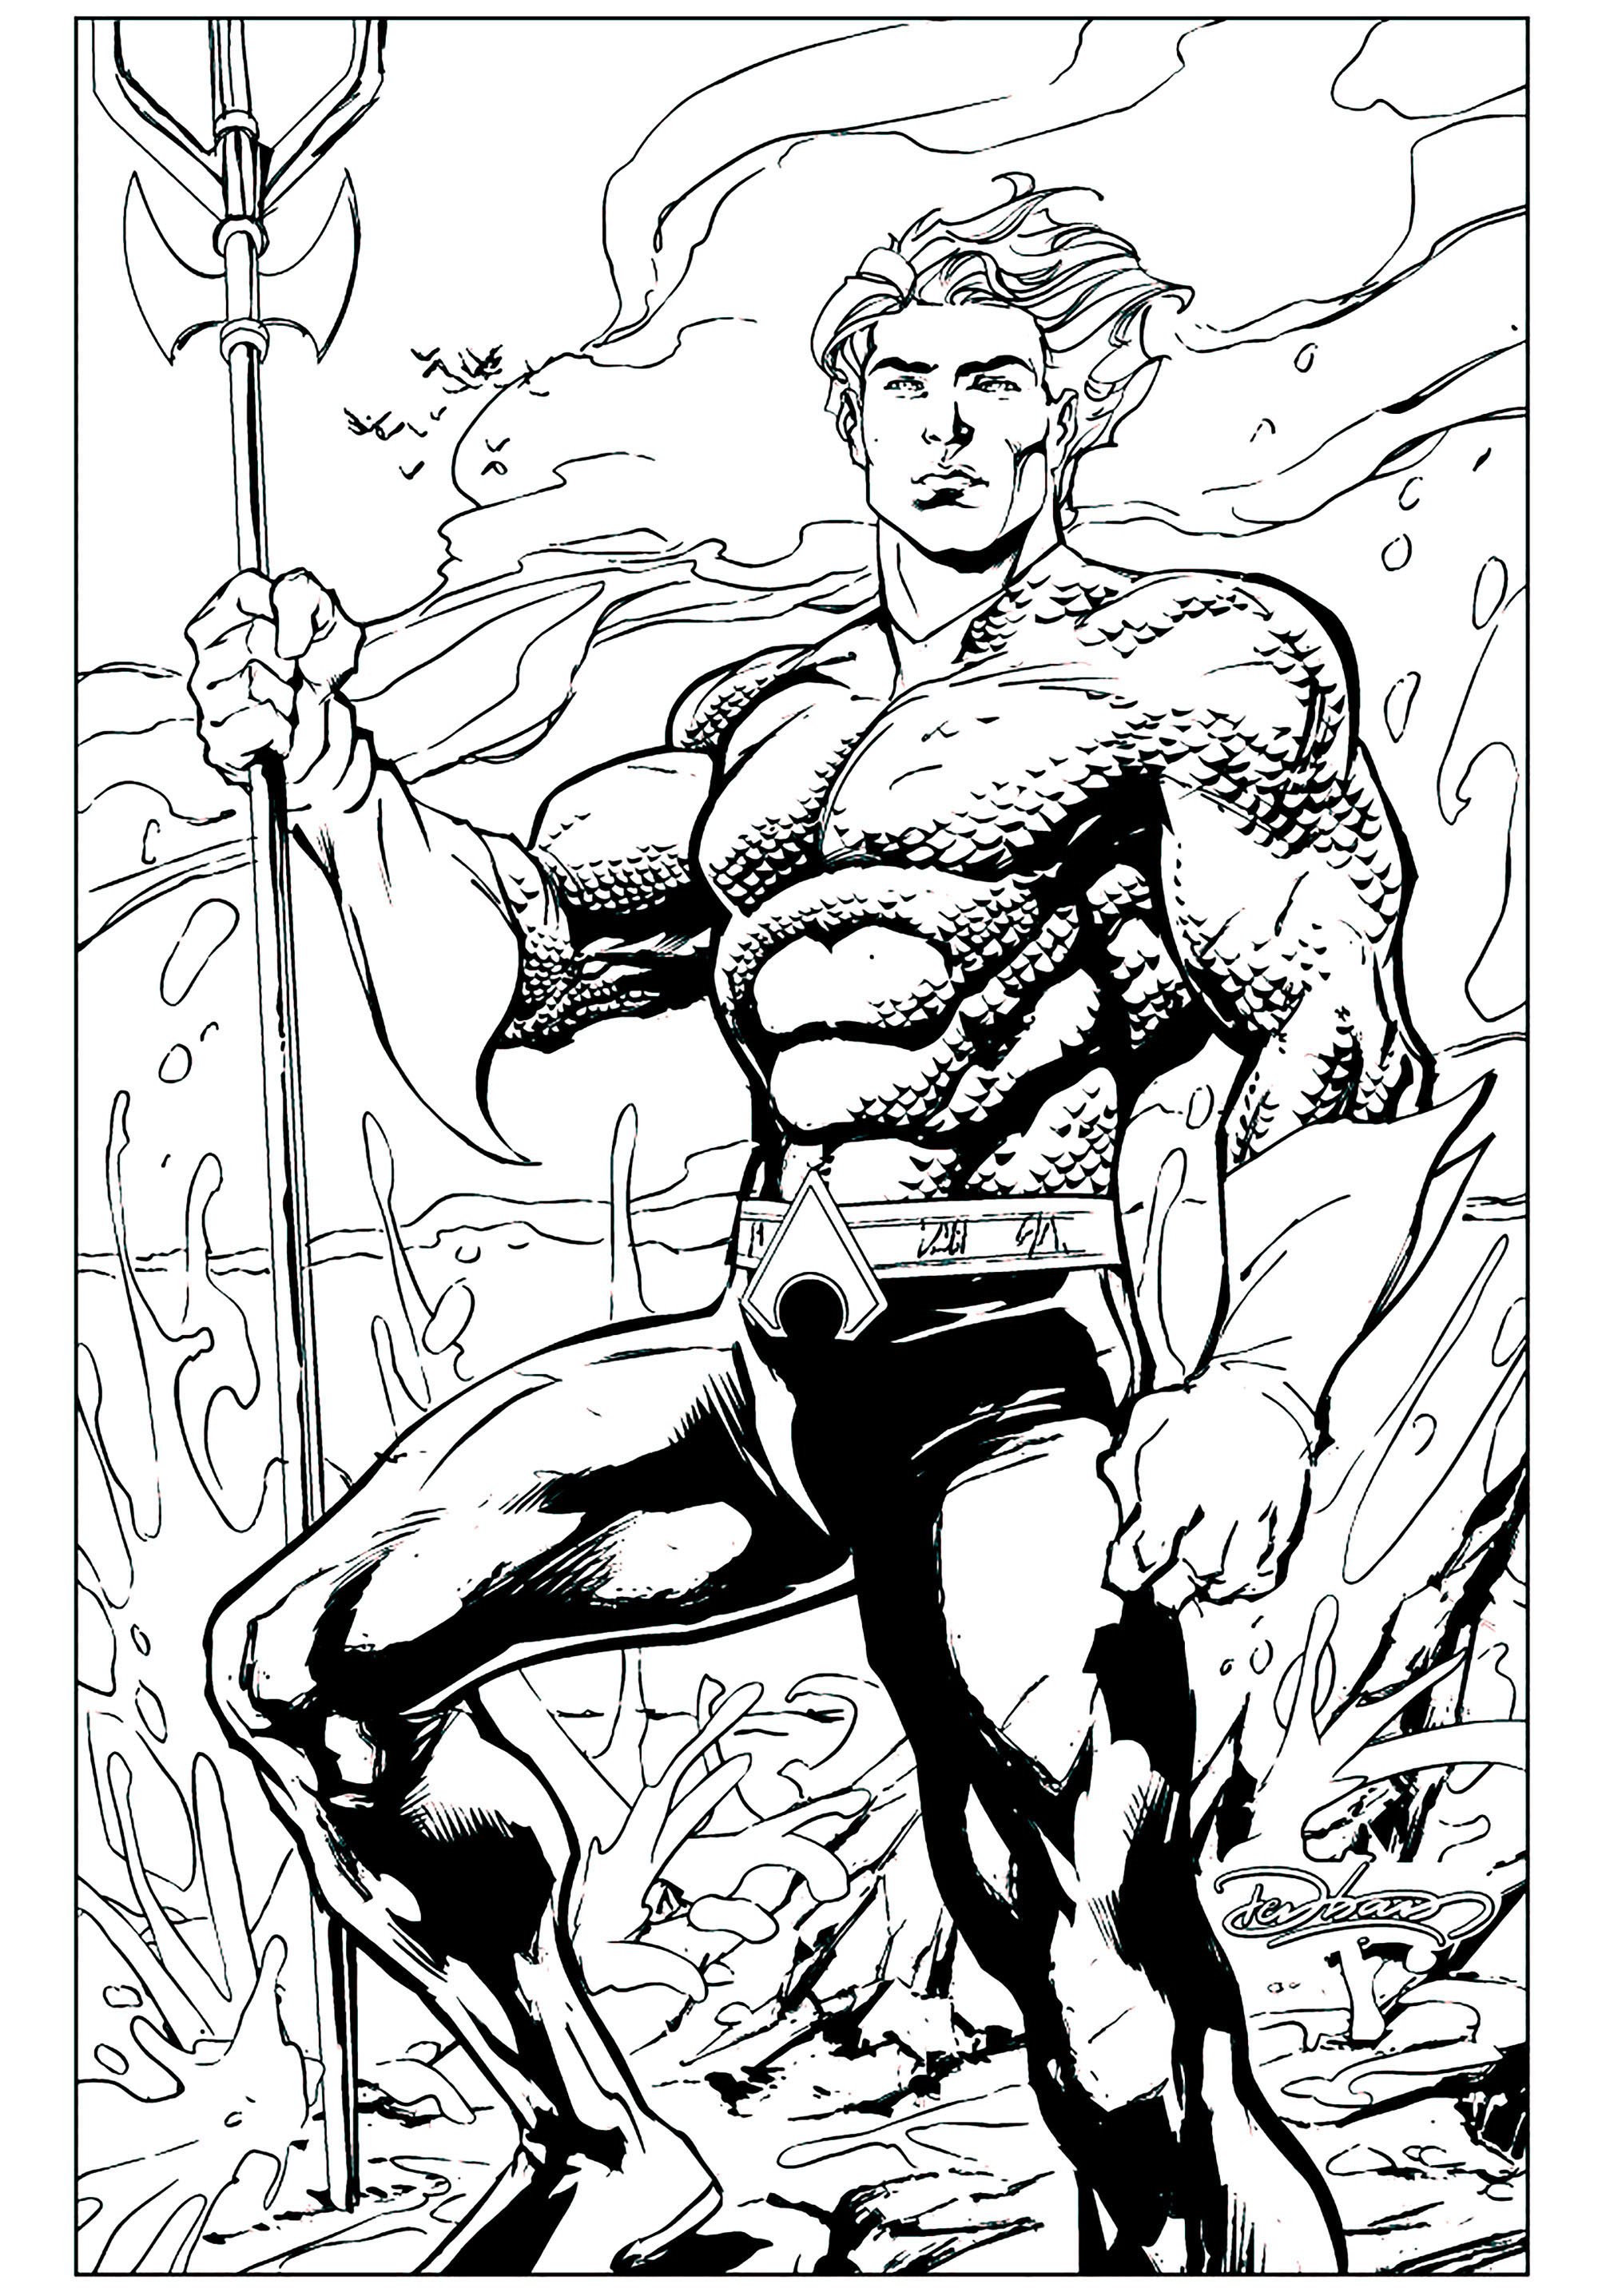 Aquaman coloring page with few details for kids